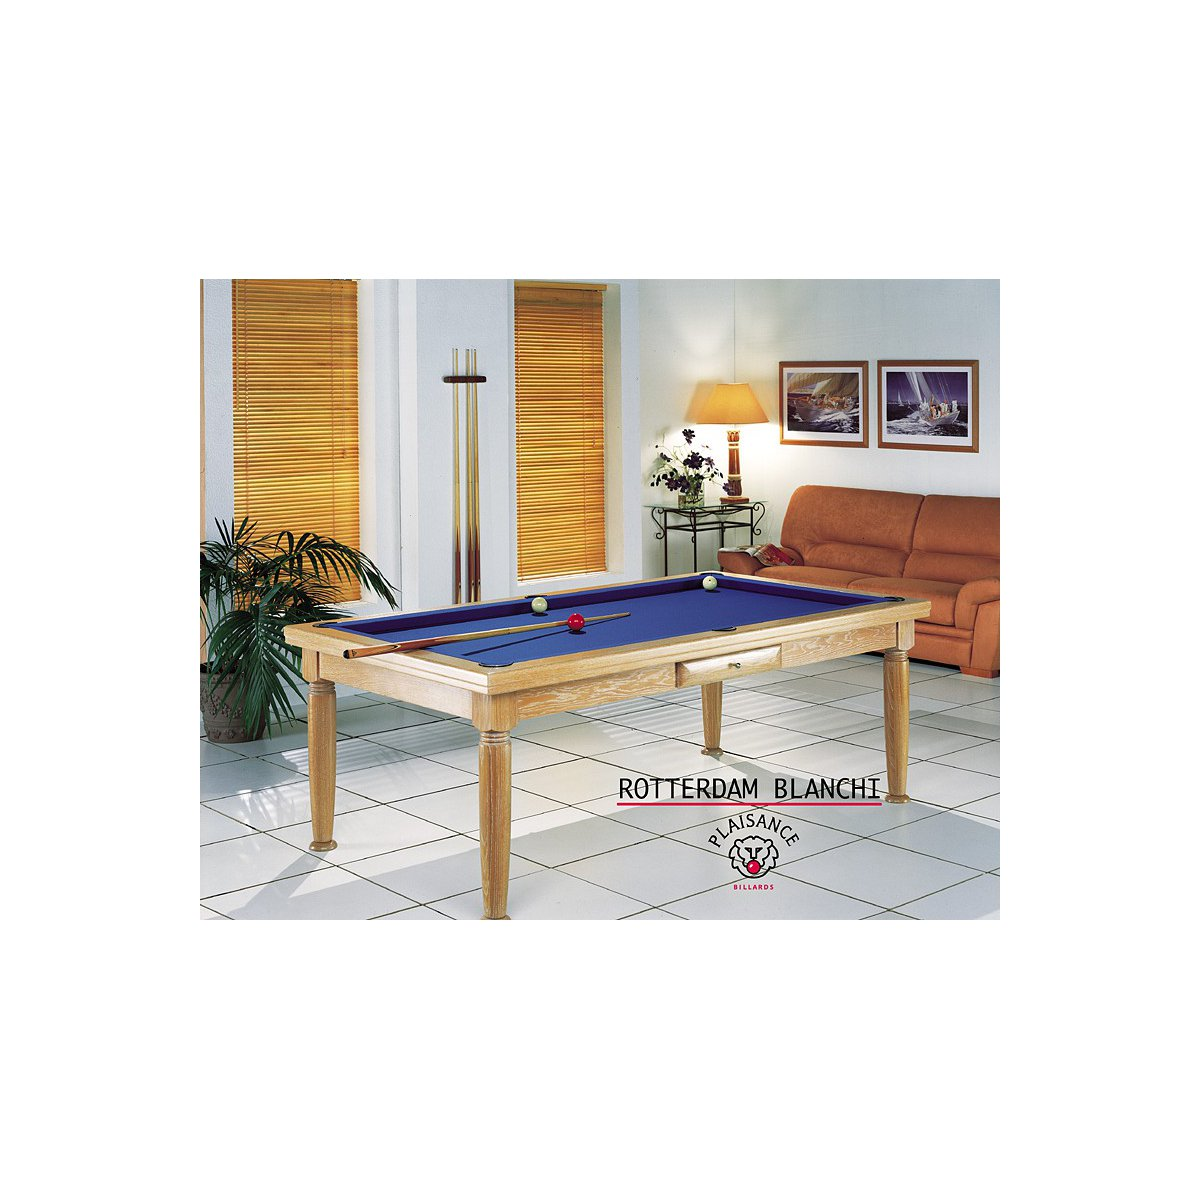 billard table a manger rotterdam blanchi. Black Bedroom Furniture Sets. Home Design Ideas